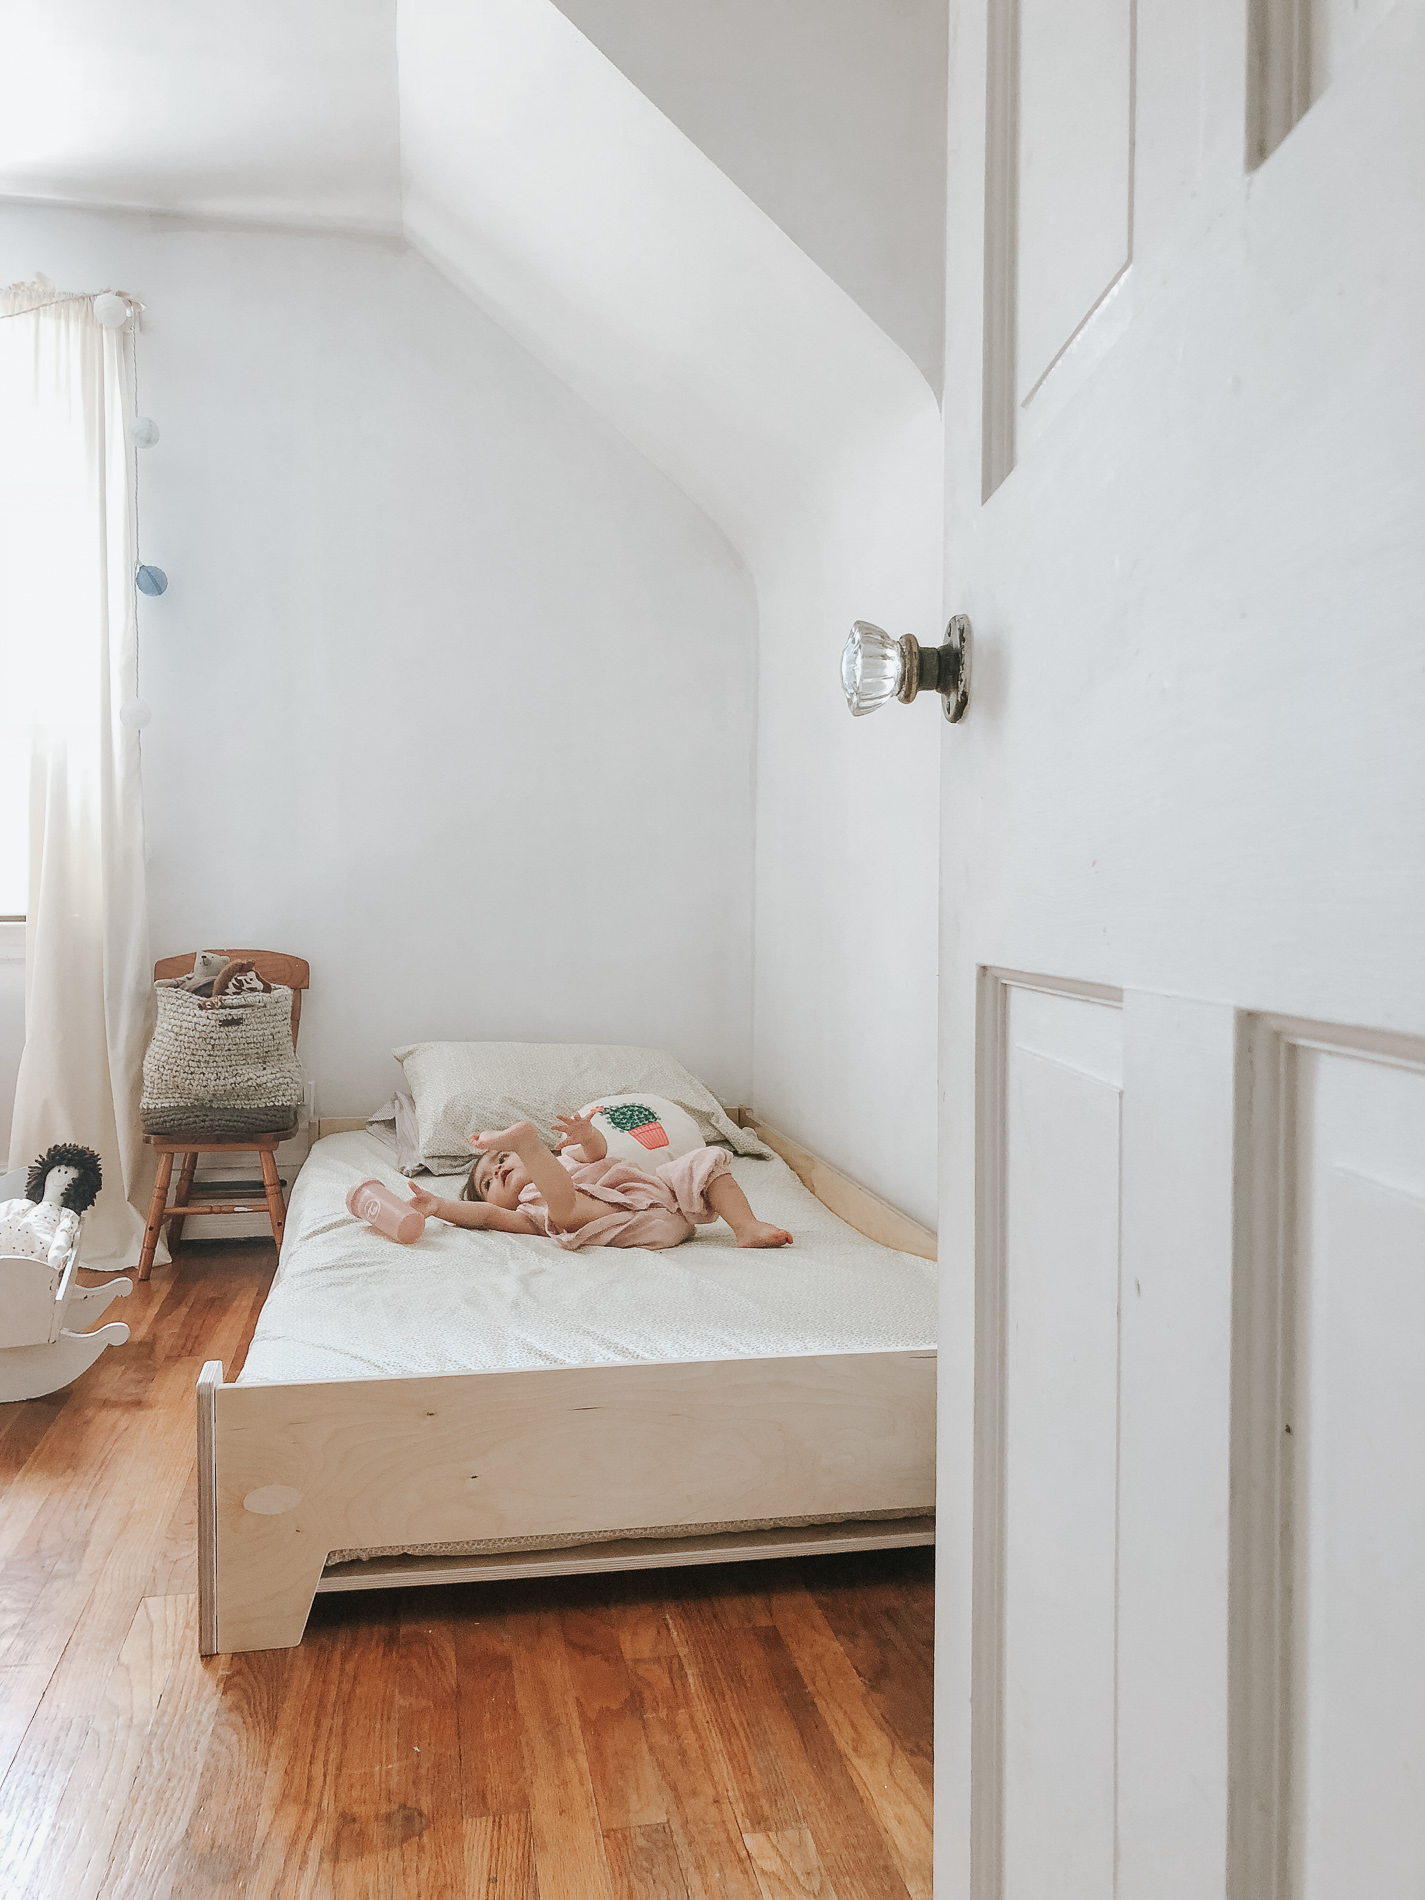 Transitioning To A Floor Bed Montessori Our Experience Bruna Masalin